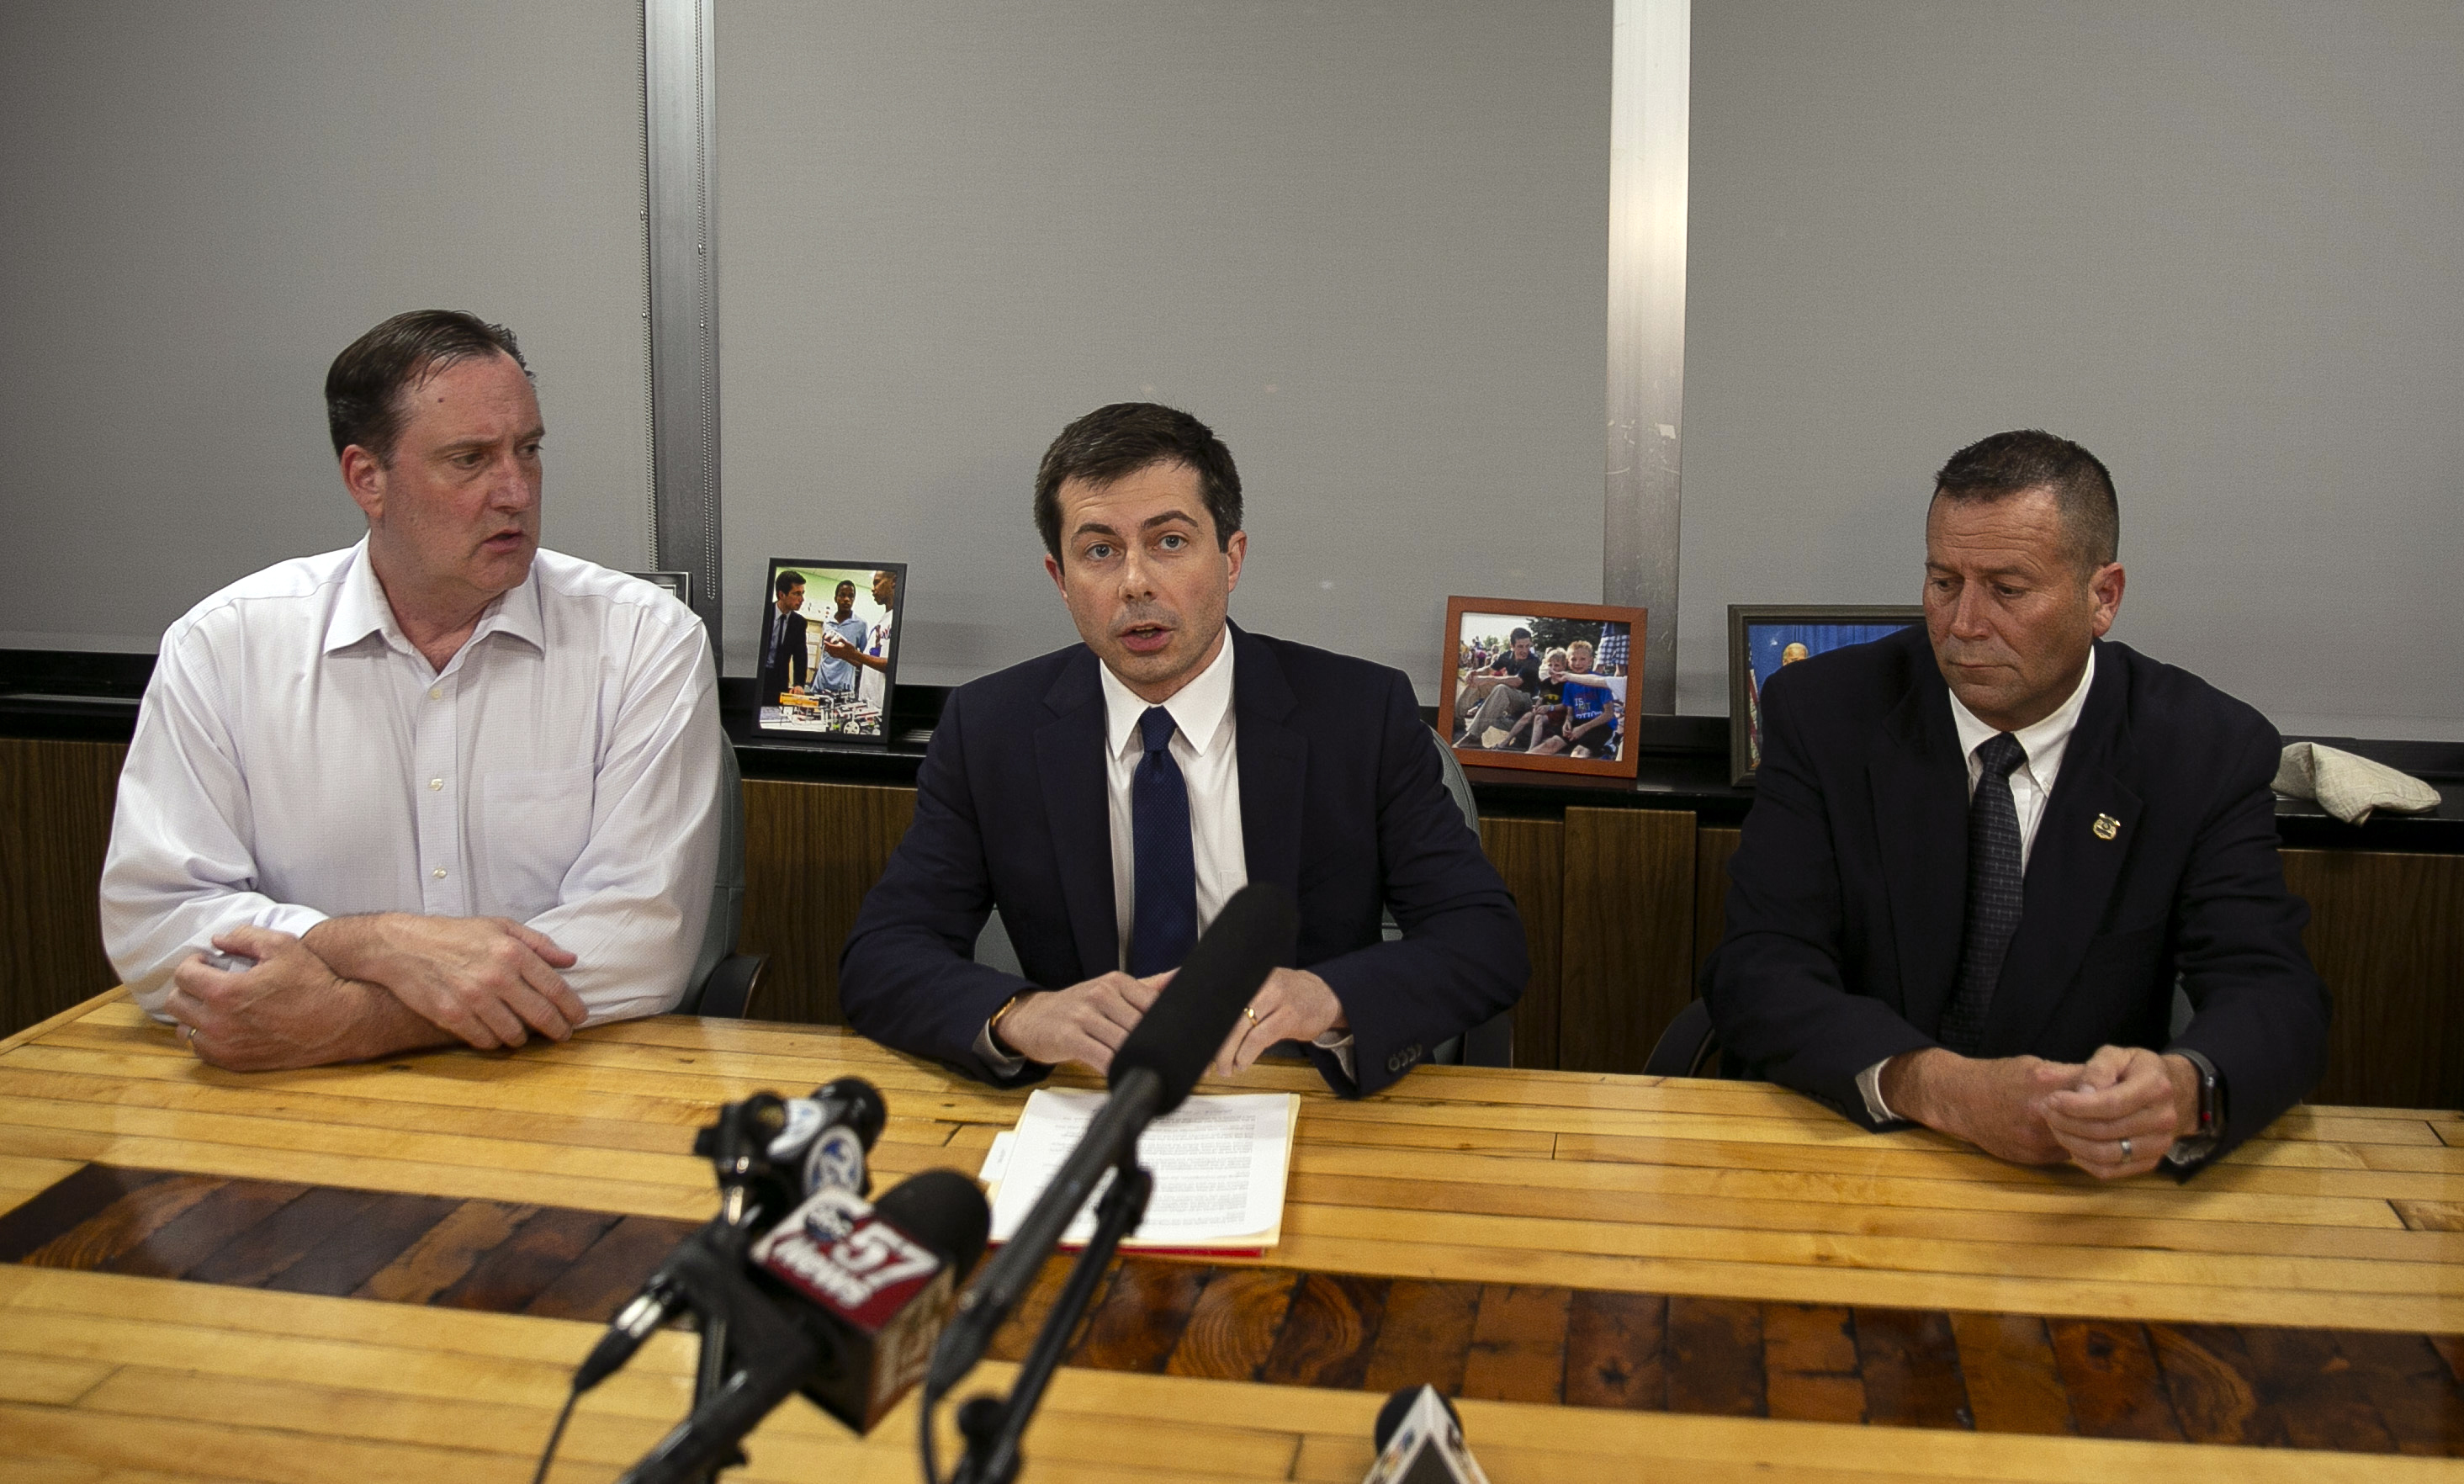 South Bend Mayor Pete Buttigieg, center, speaks during a news conference, Sunday, June 16, 2019, in South Bend, Ind., as South Bend Common Council President Tim Scott, left, and South Bend Police Chief Scott Ruszkowski, listen. Democratic presidential candidate Buttigieg changed his campaign schedule to return to South Bend for the late night news conference, after authorities say a man died after a shooting involving a police officer.